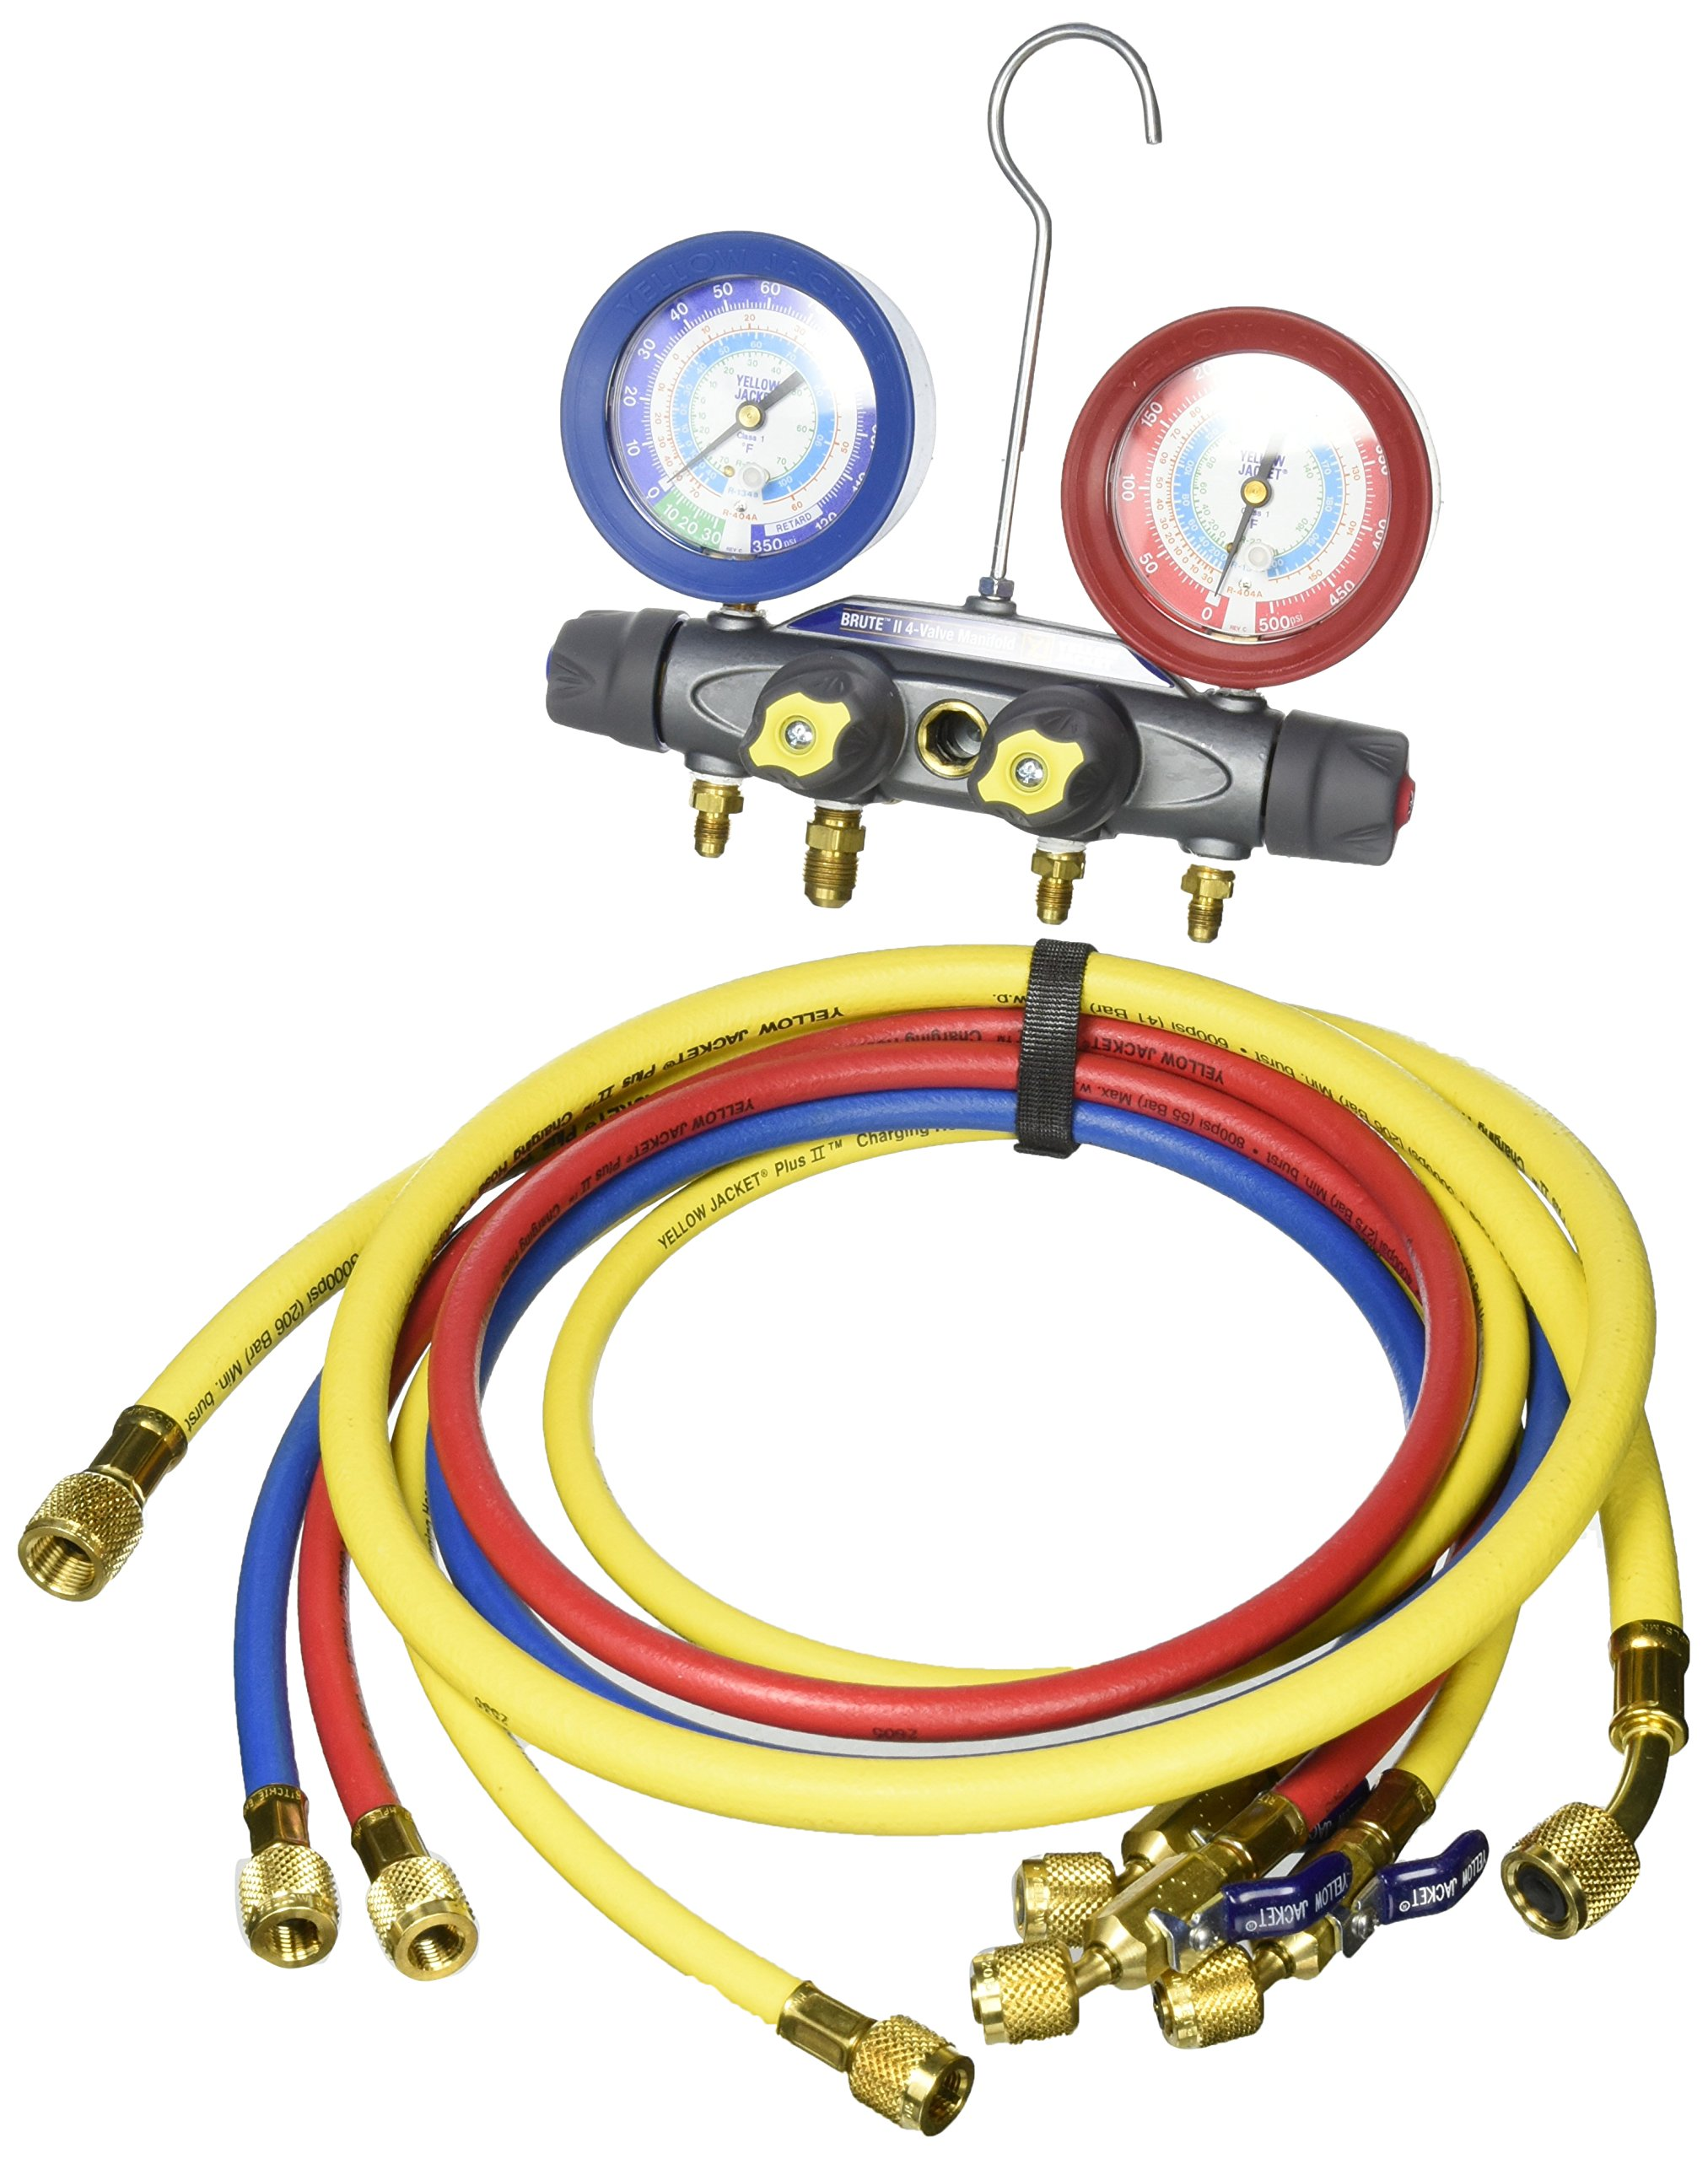 Yellow Jacket 46043 Brute II Test and Charging Manifold, F/C, psi, R-22/134A/404A, Red/Blue Gauge